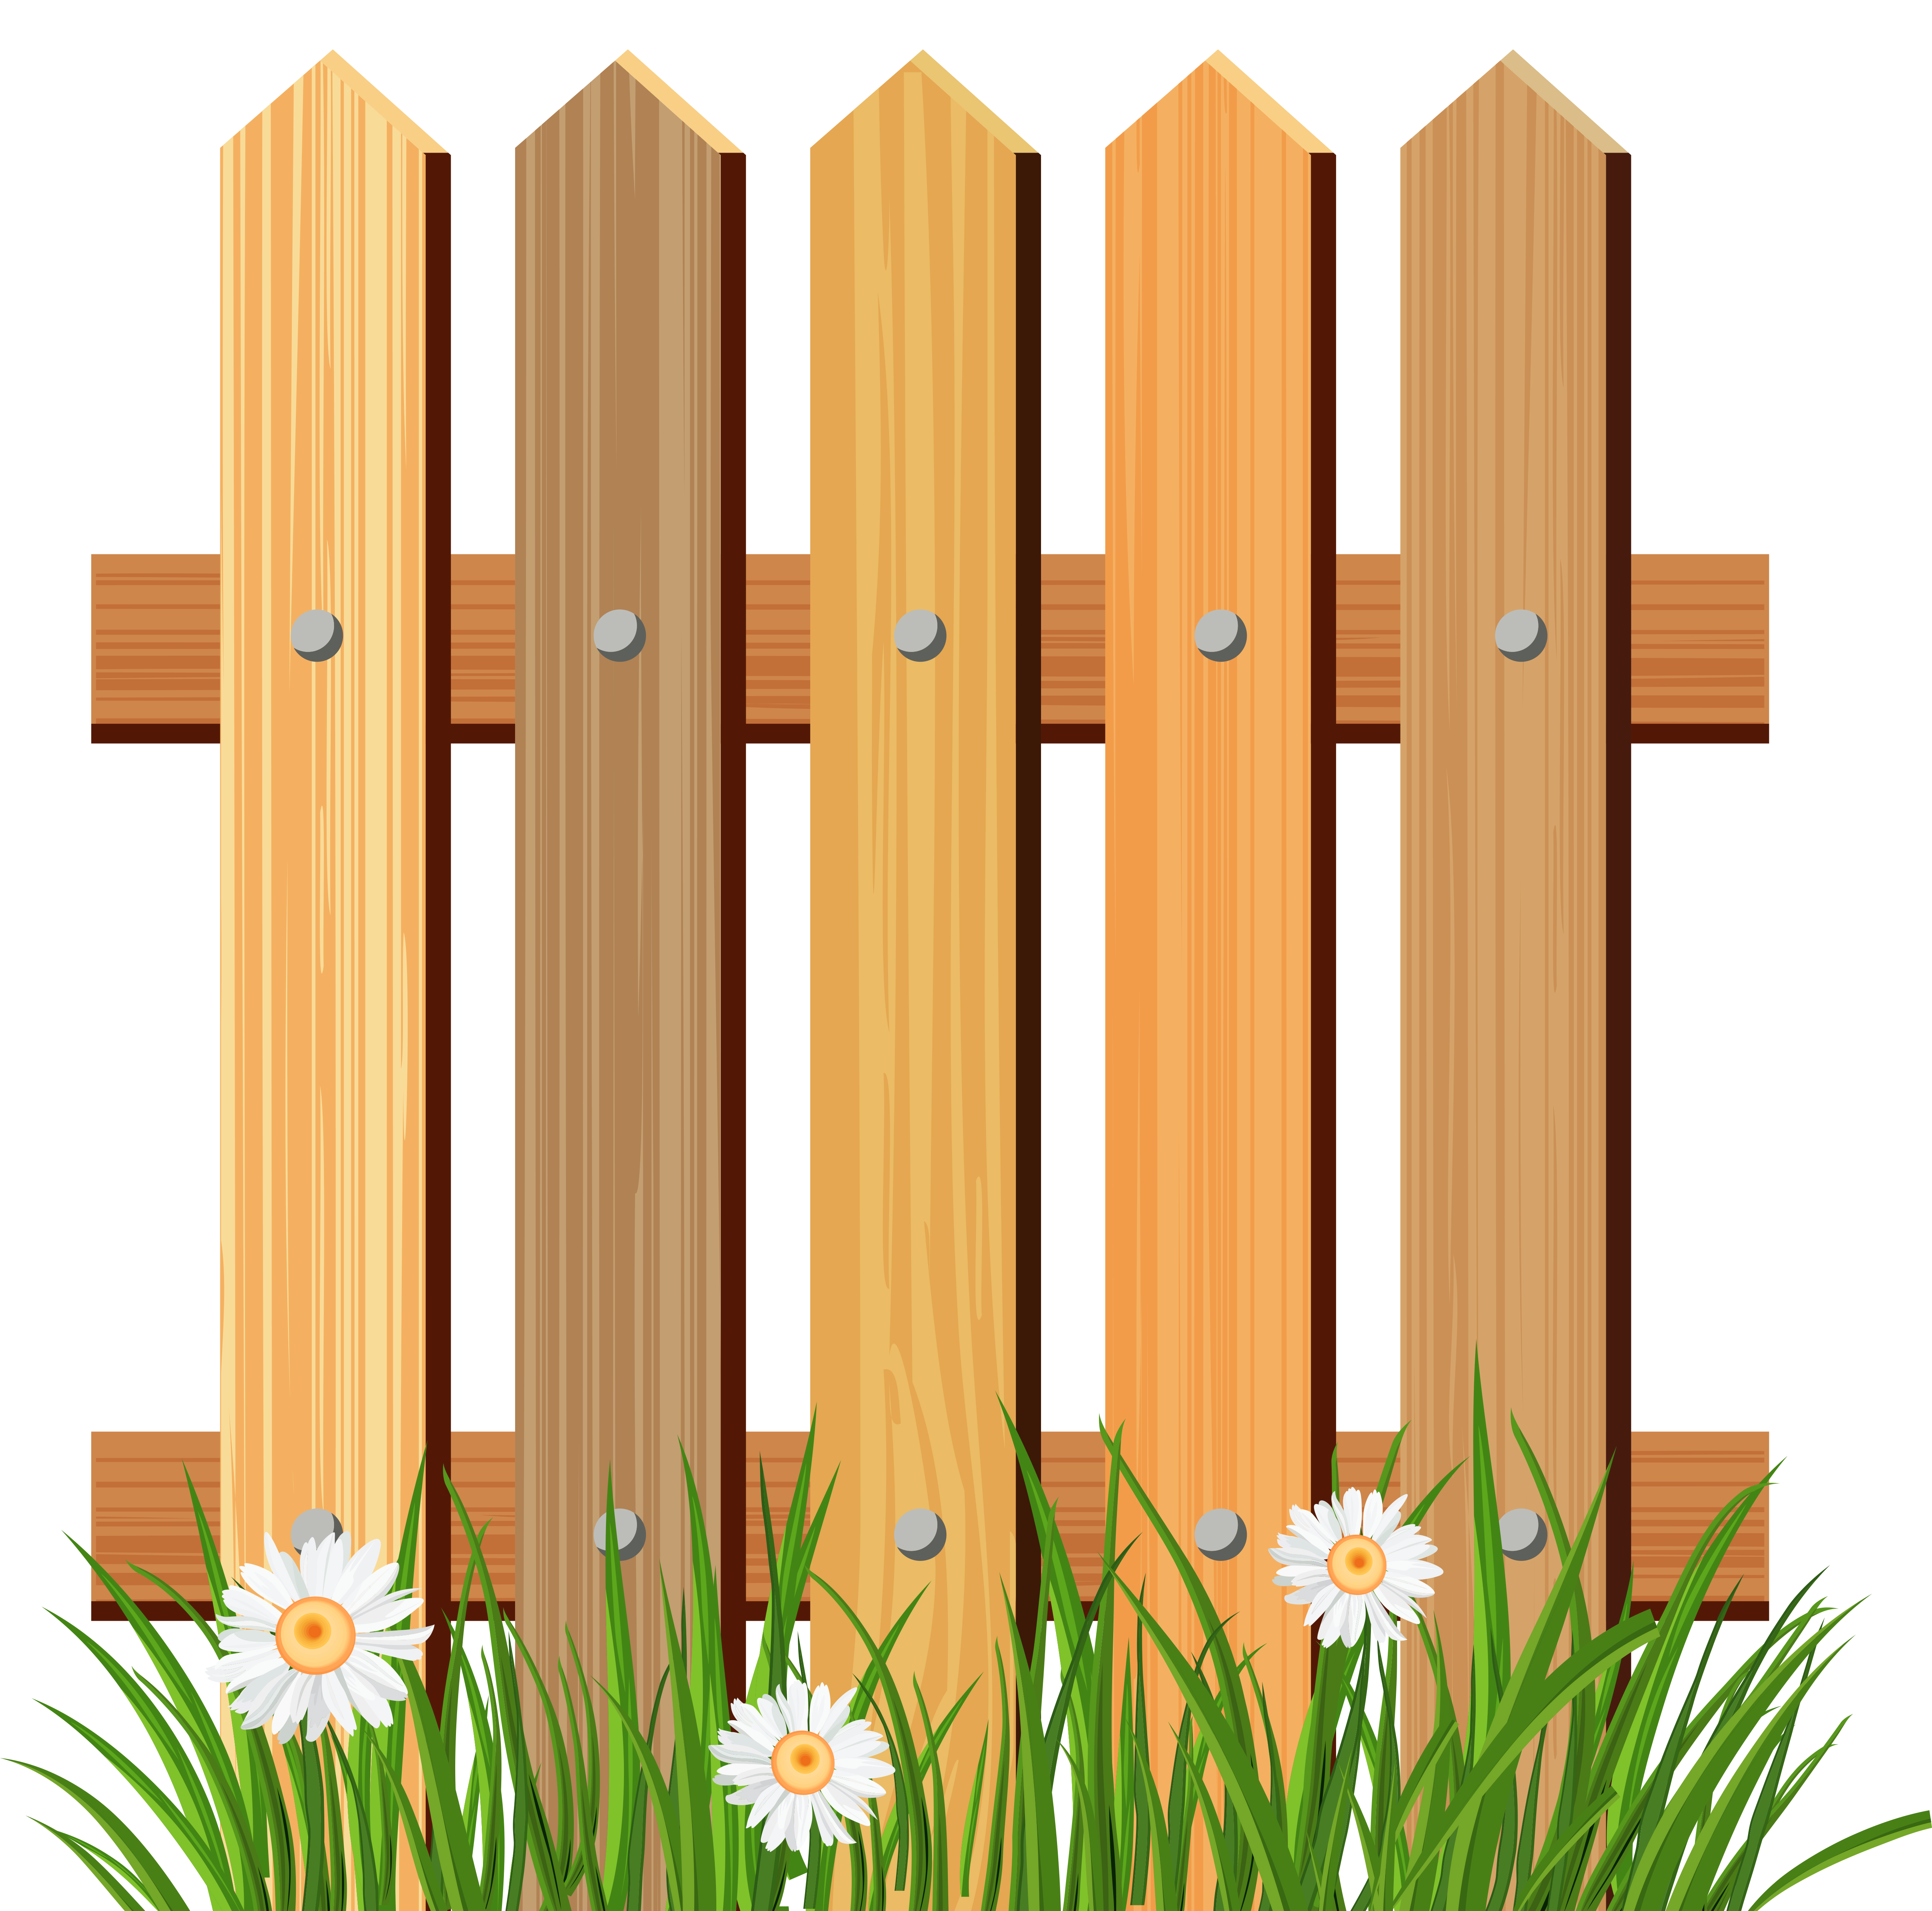 Background clipart fence Free Fence on Grass Free